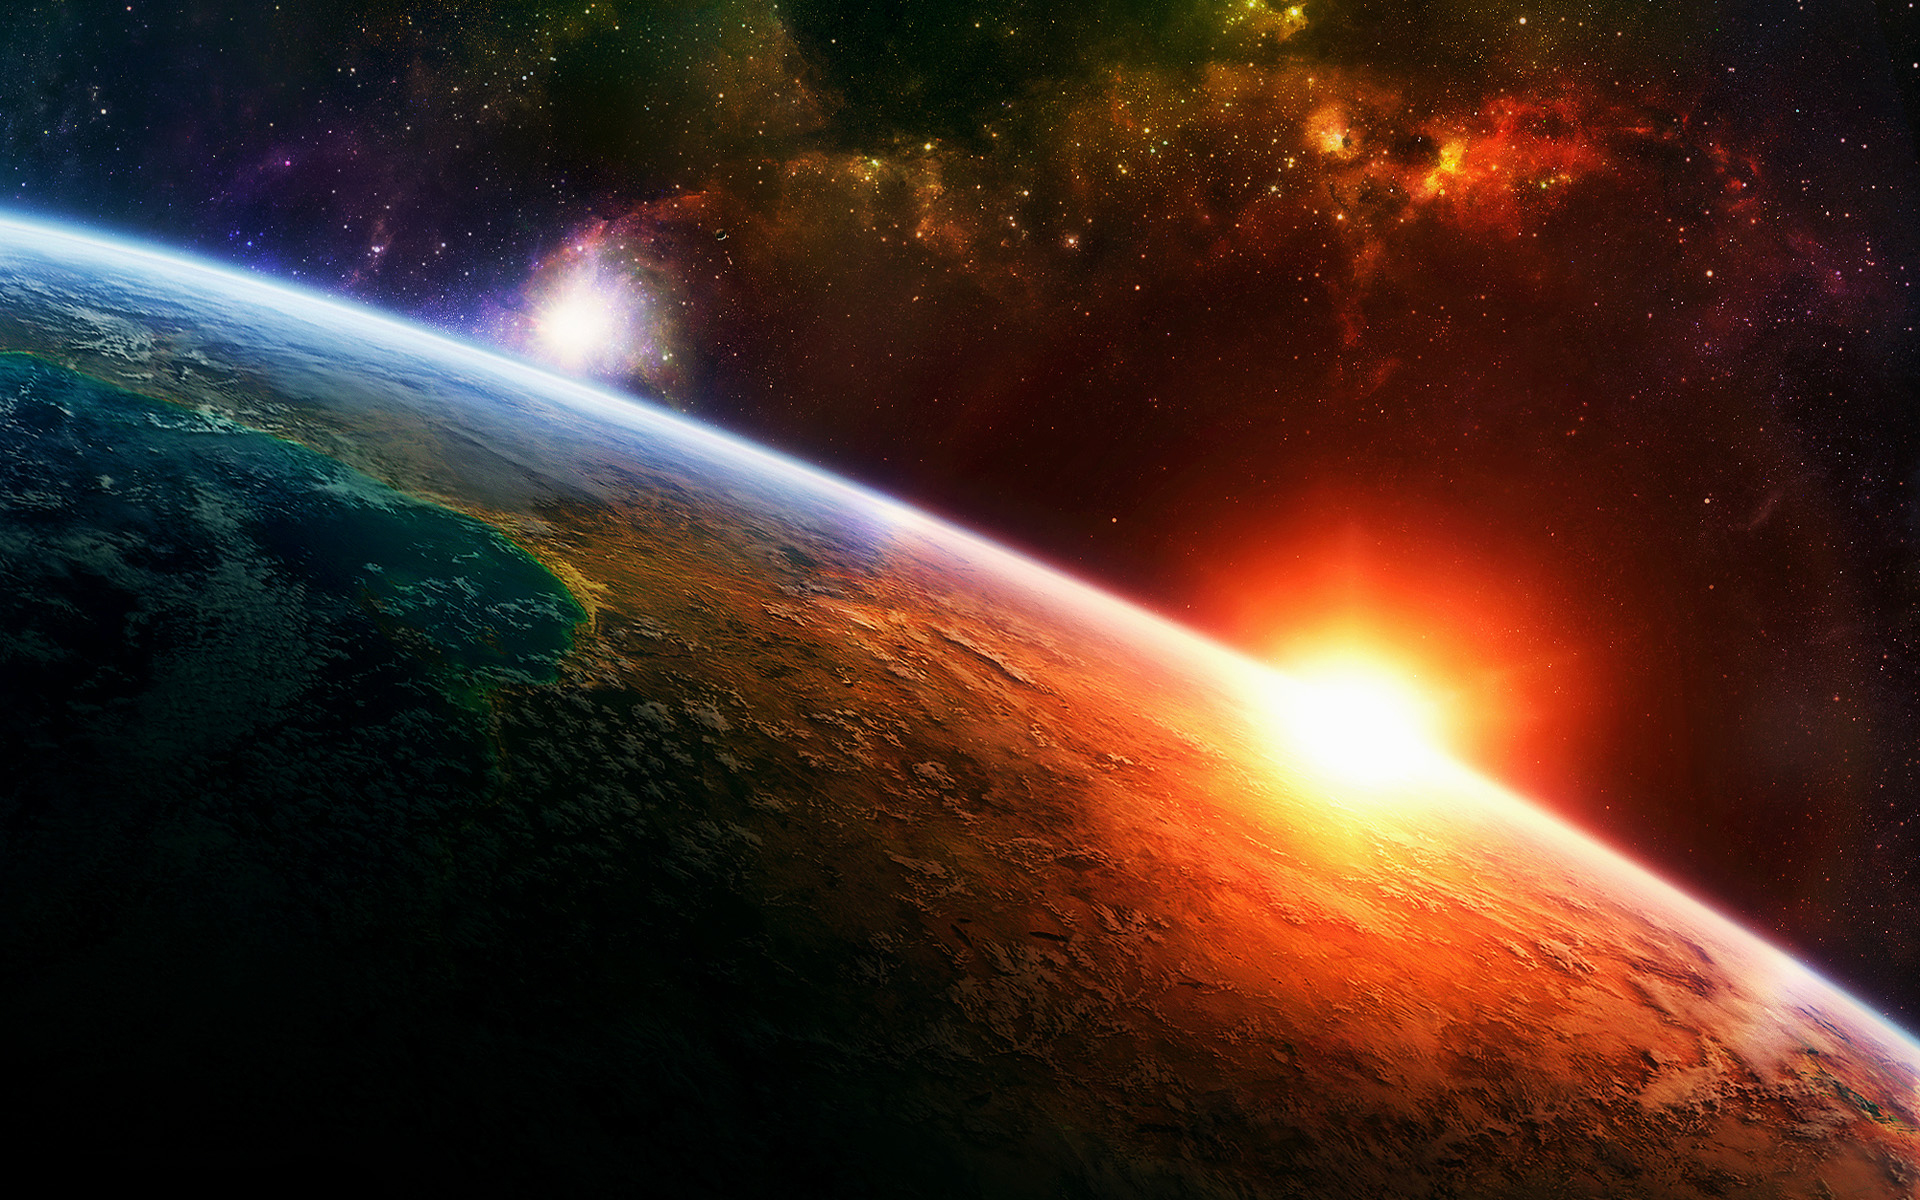 1920 x 1200 Wallpapers Widescreen Wallpapers 6028 3d space scene hd 1920x1200